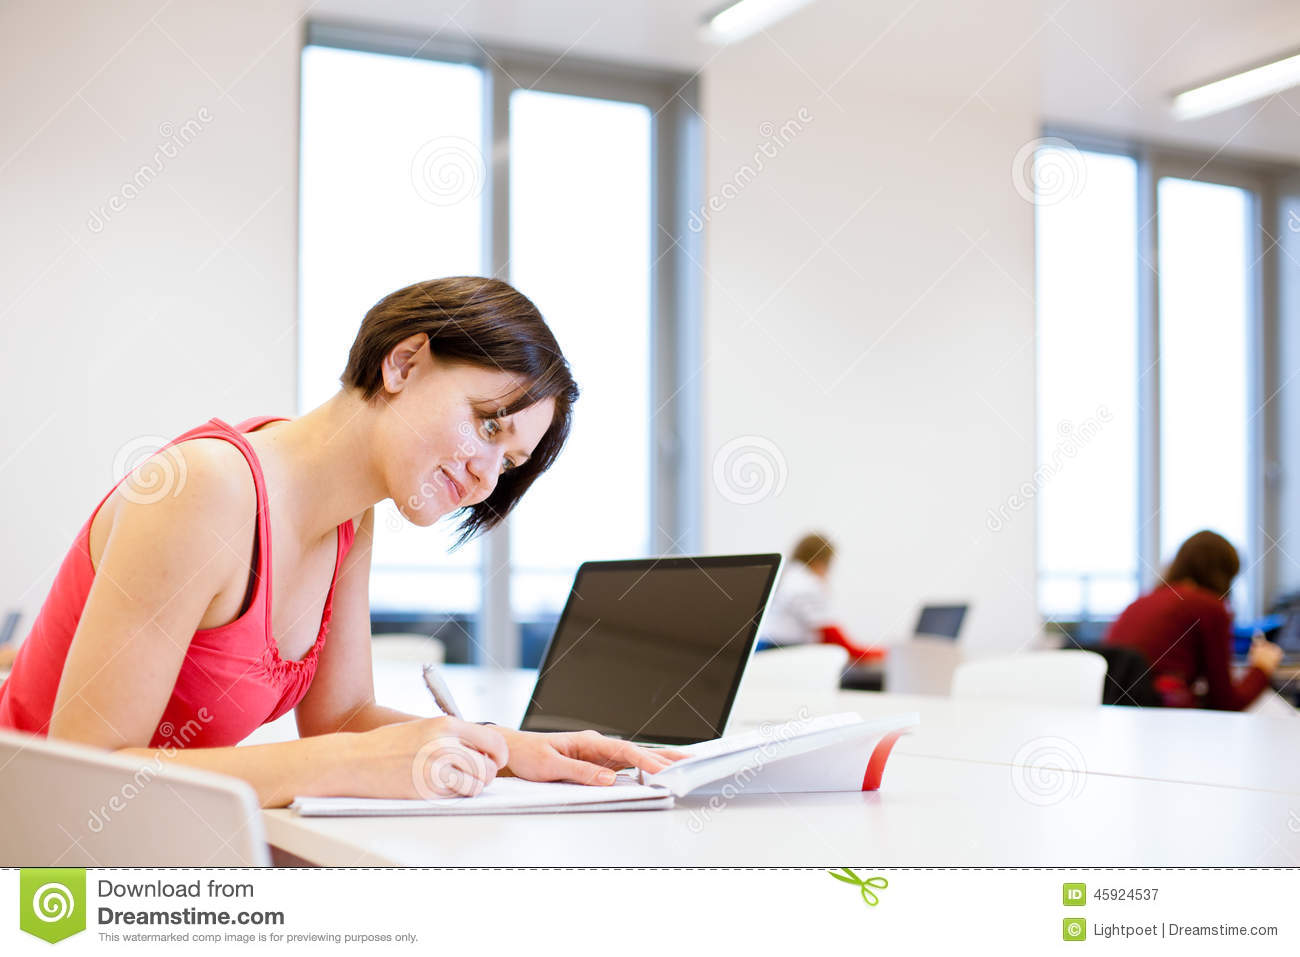 essay on use of computer in modern world Essay on the uses of computer in schools  modern sciences and technologies which are dependent on the use of computers such as geographic information systems .